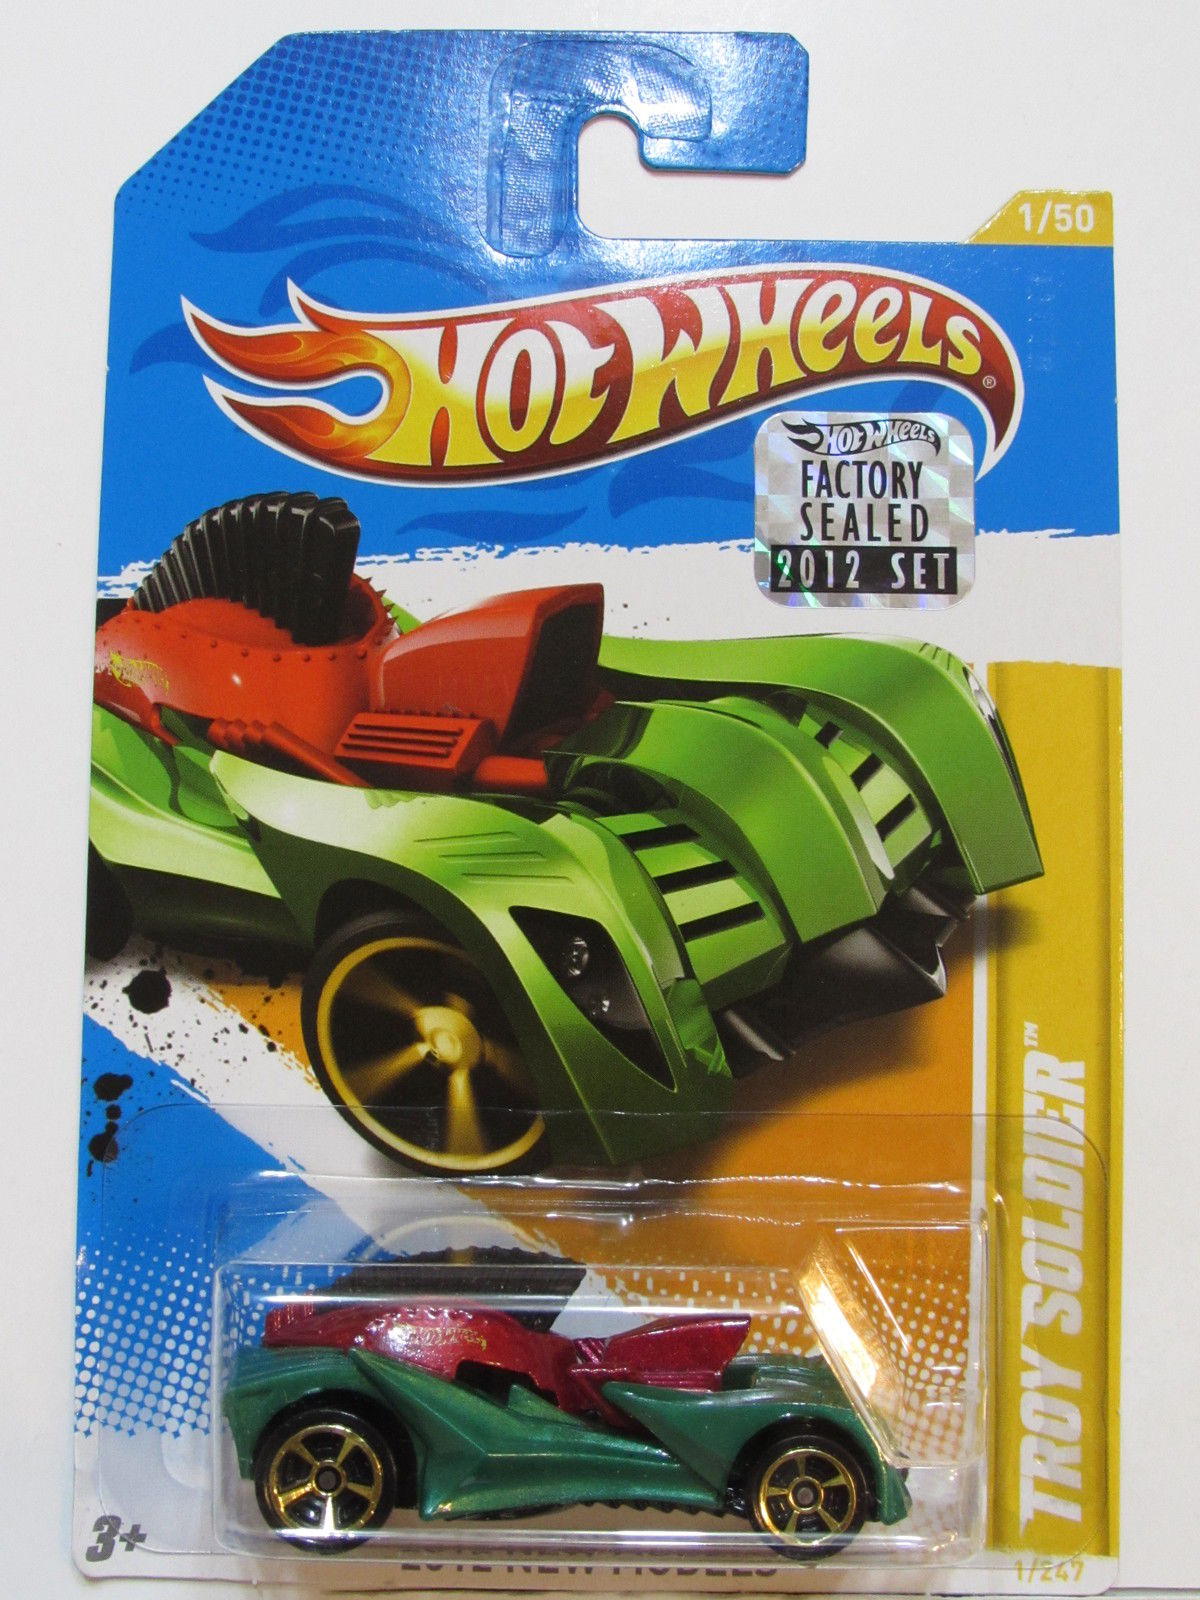 HOT WHEELS 2012 NEW MODELS - TROY SOLDIER FACTORY SEALED